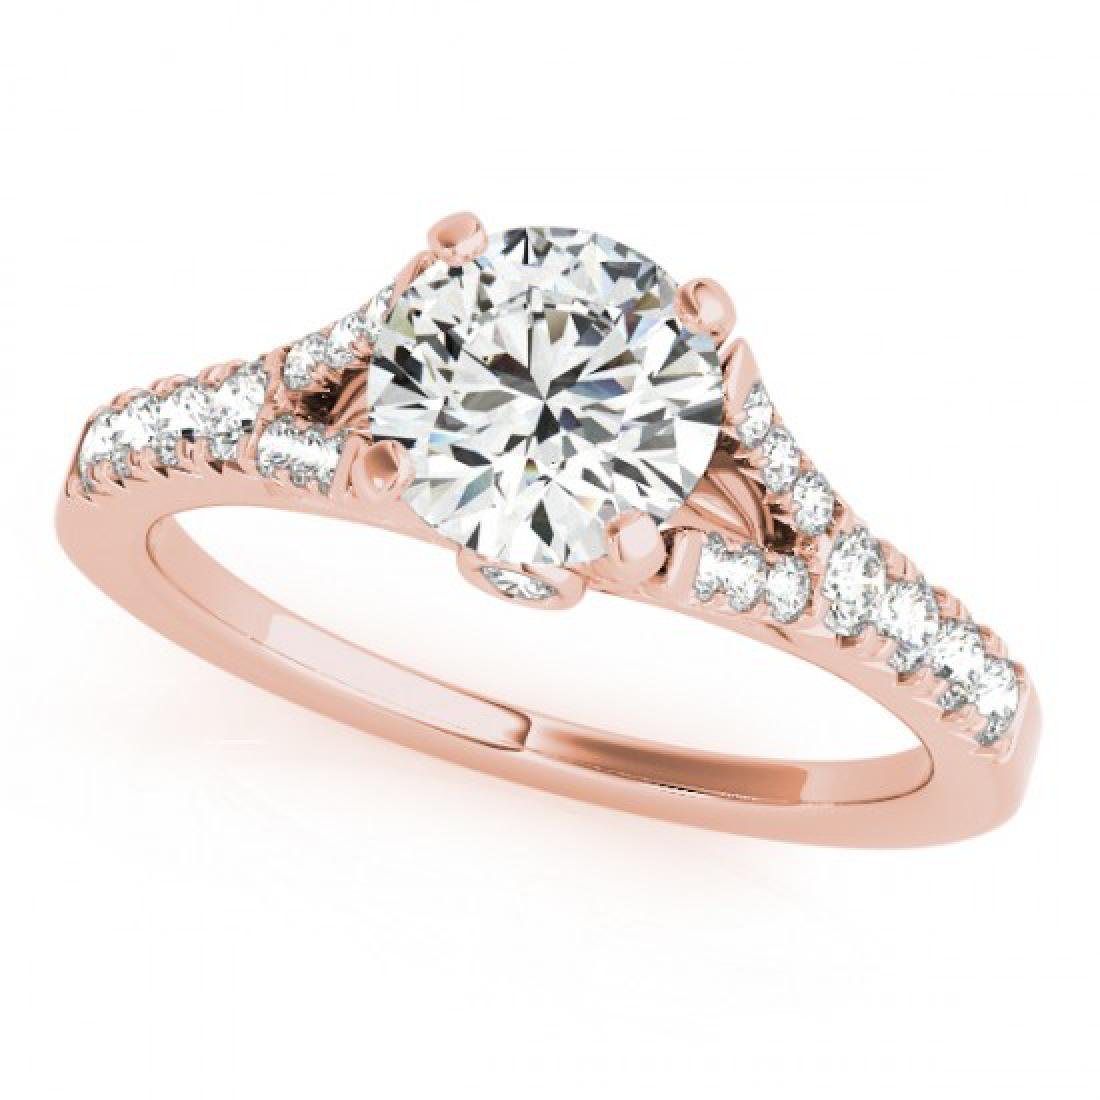 1 CTW Certified VS/SI Diamond Solitaire Ring 14K Rose